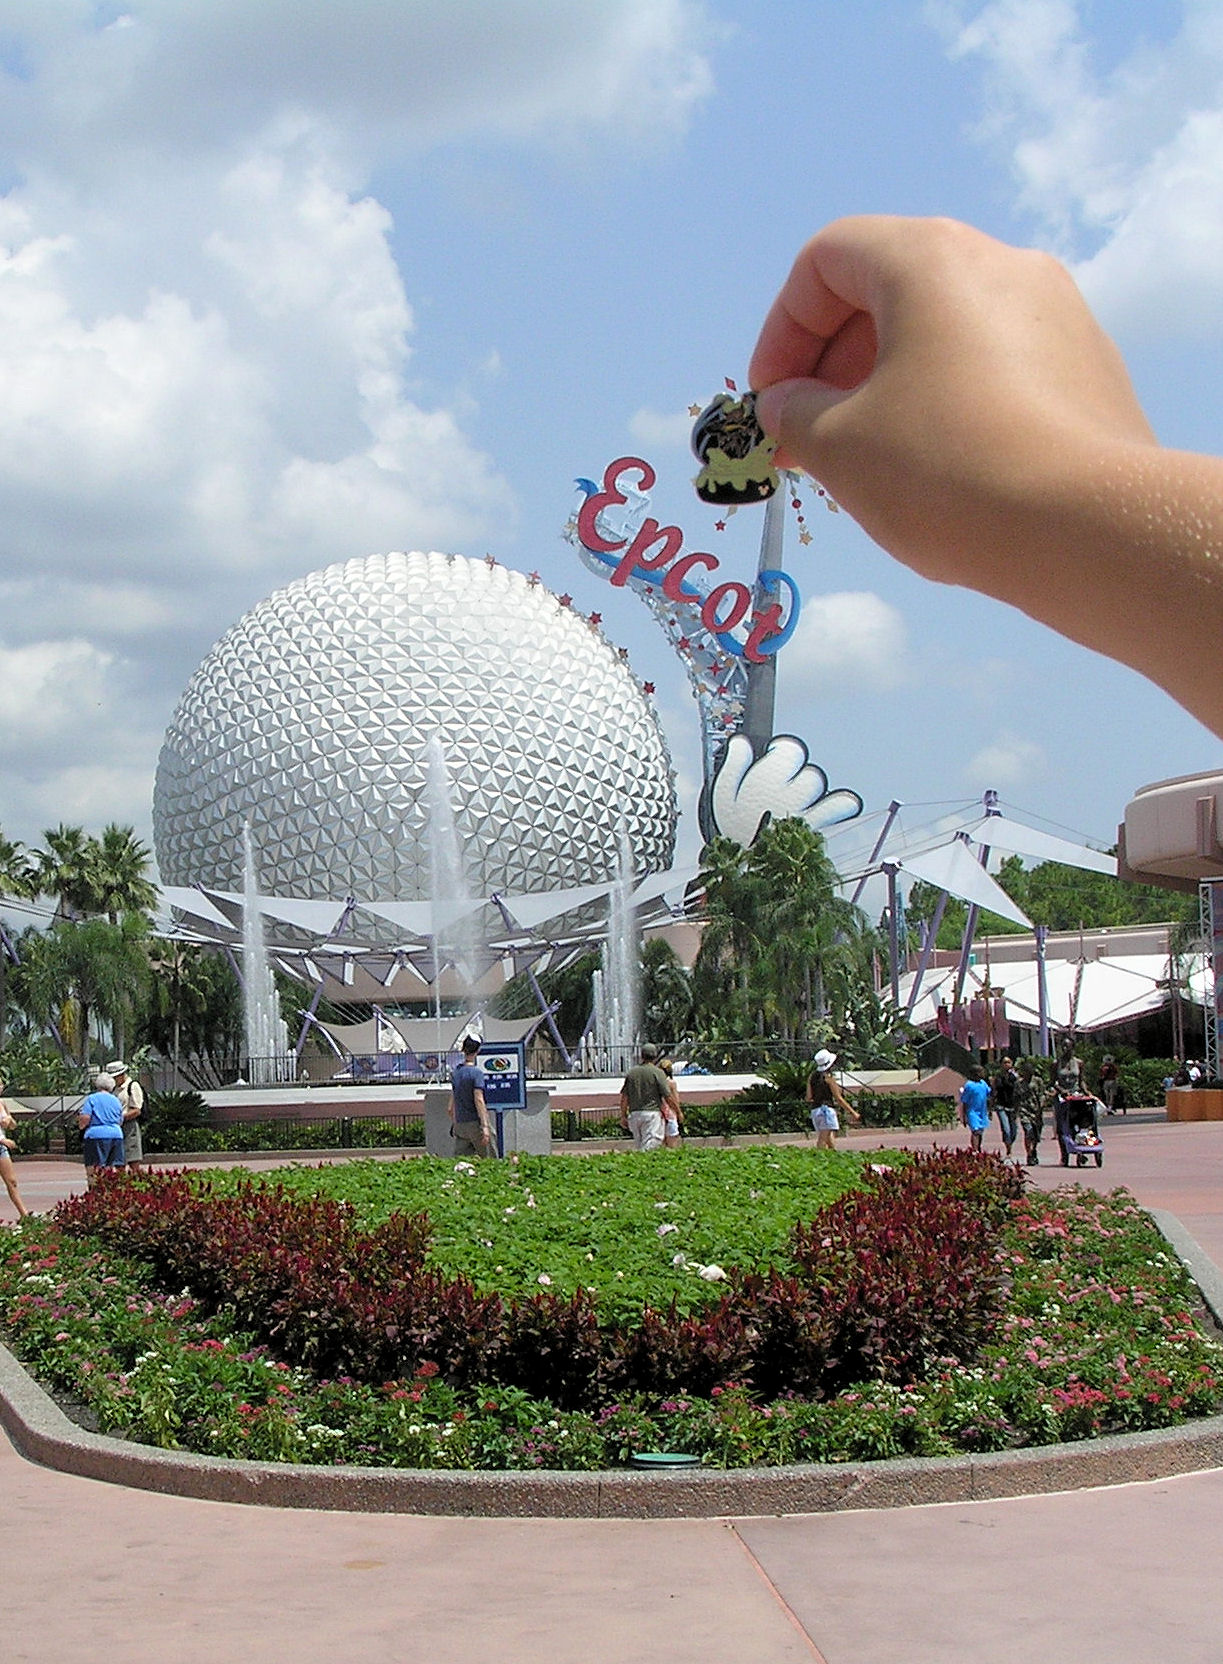 The Big Ball with the Mickey hand on it at EPCOT with me holding a pin in front of the top of the wand.